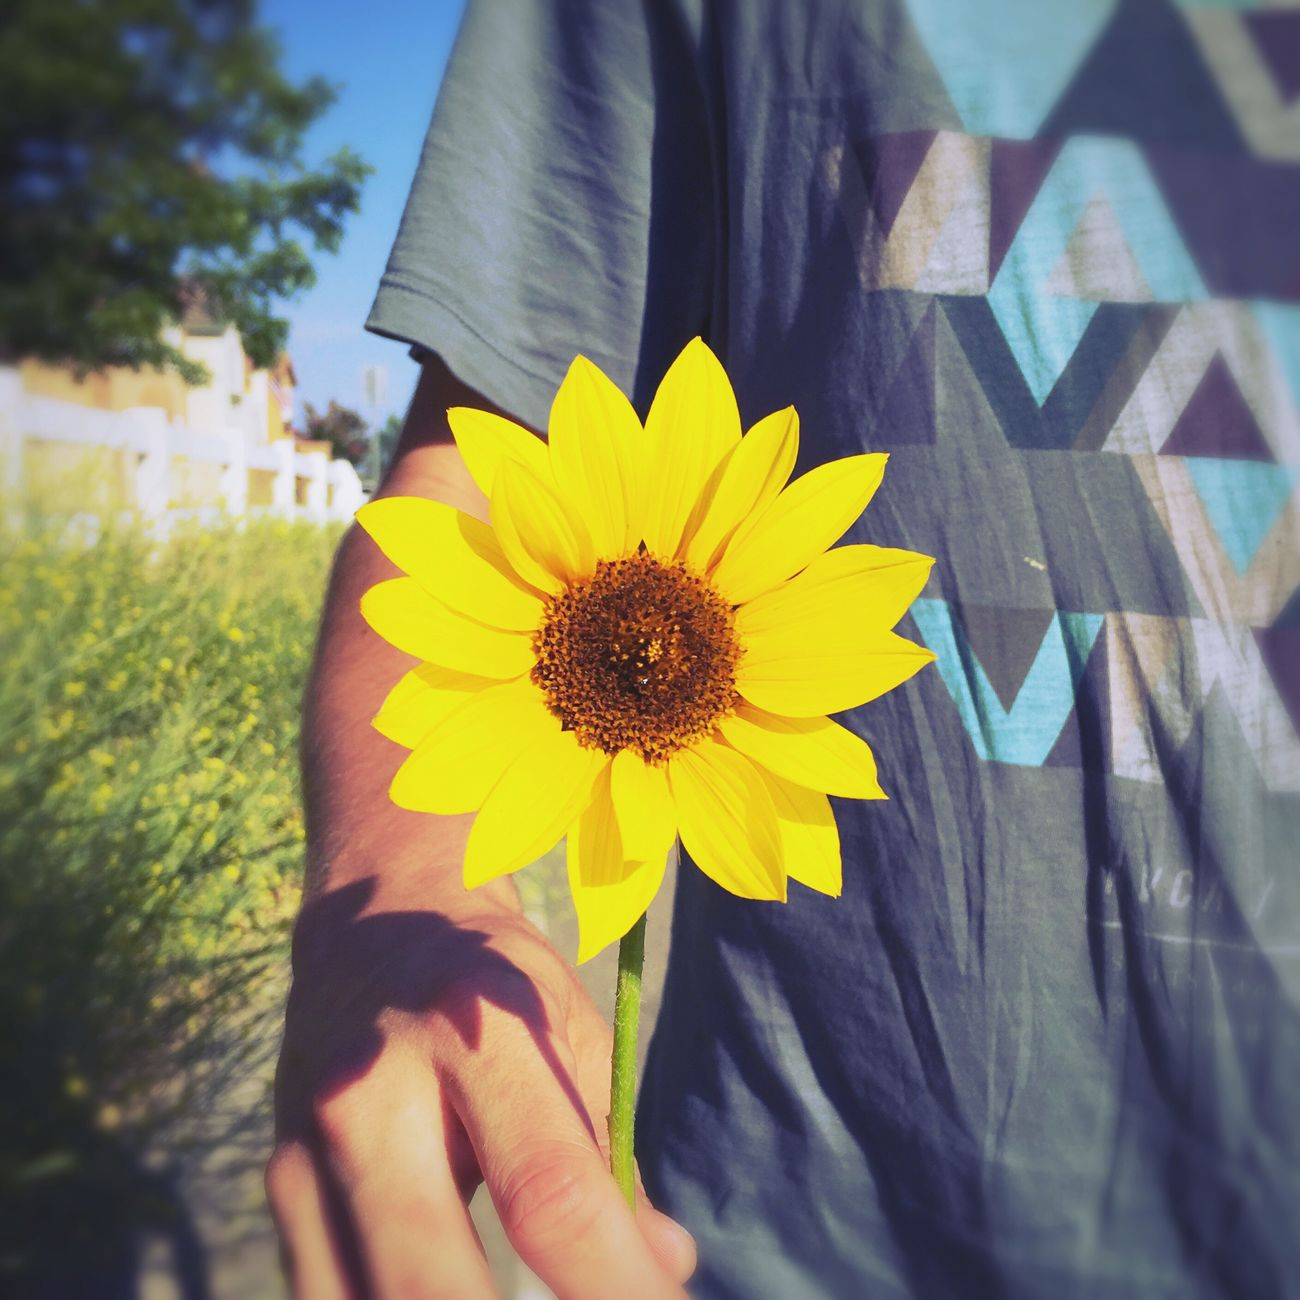 my summer love gave me a miniature sunflower before I left Summer Sunflower Cute Alwayshandedflowers Flower Yellow Sunshine